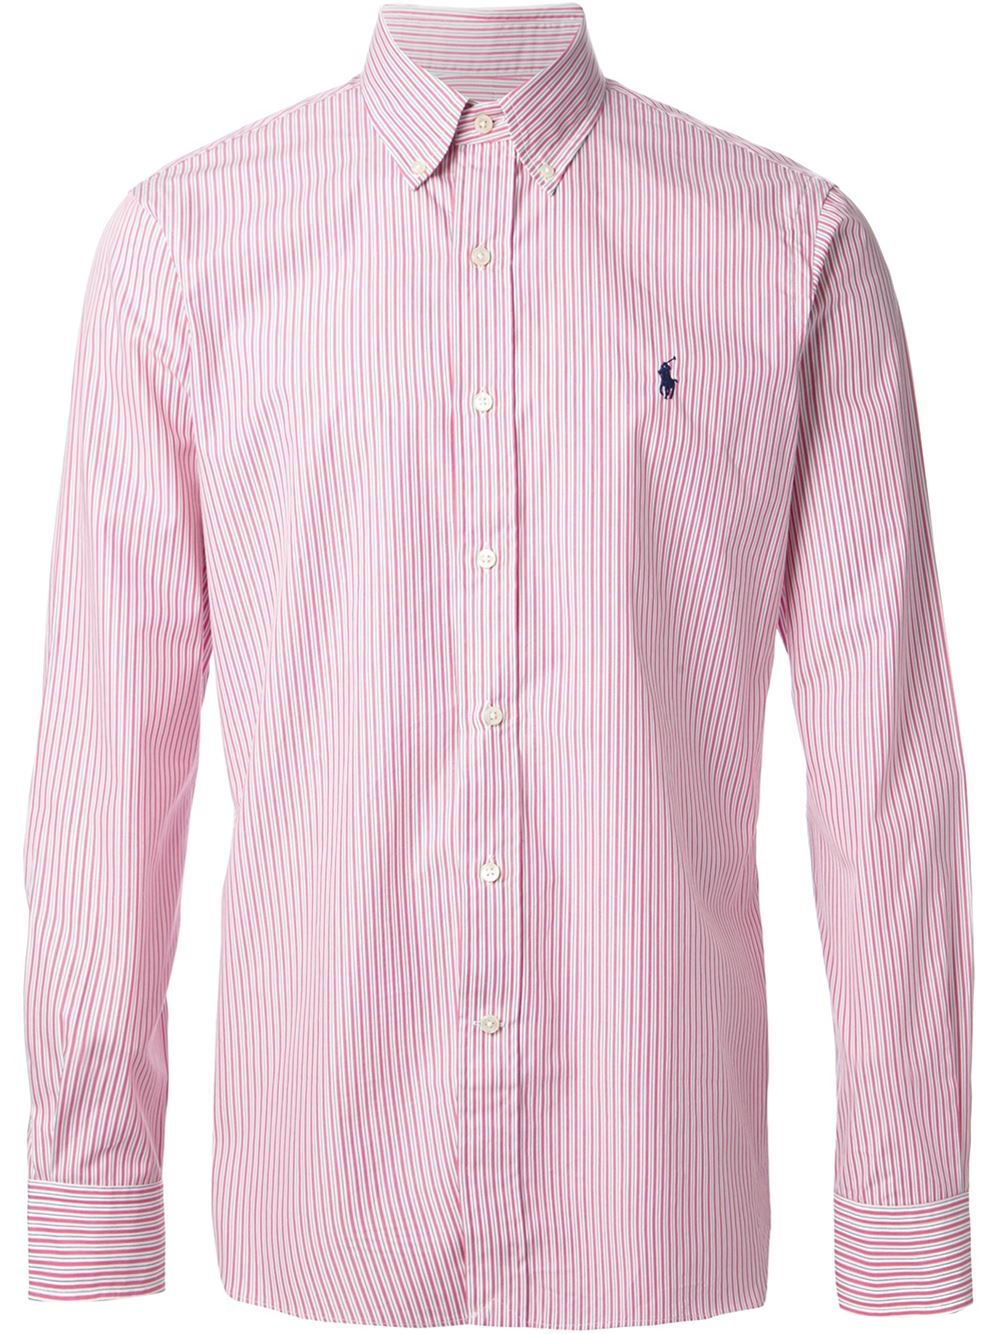 Polo ralph lauren Striped Shirt in Purple for Men | Lyst